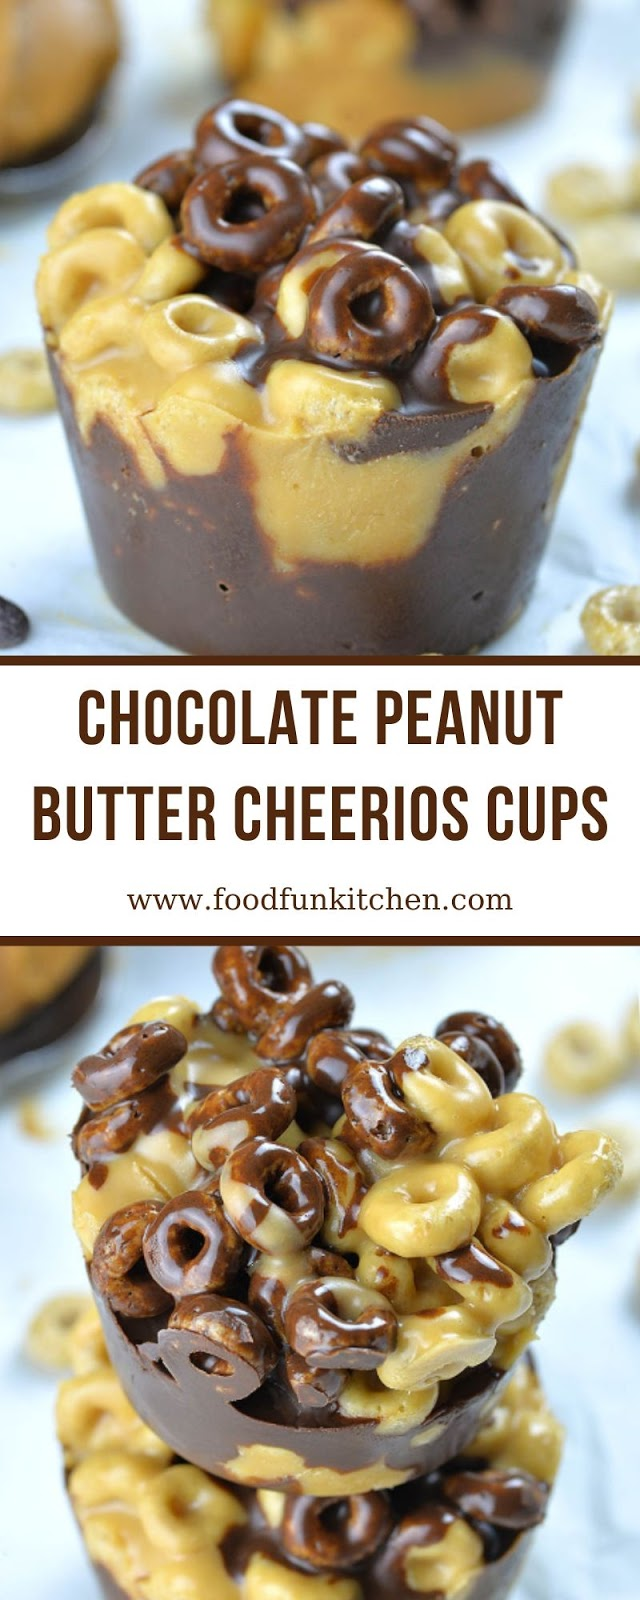 CHOCOLATE PEANUT BUTTER CHEERIOS CUPS